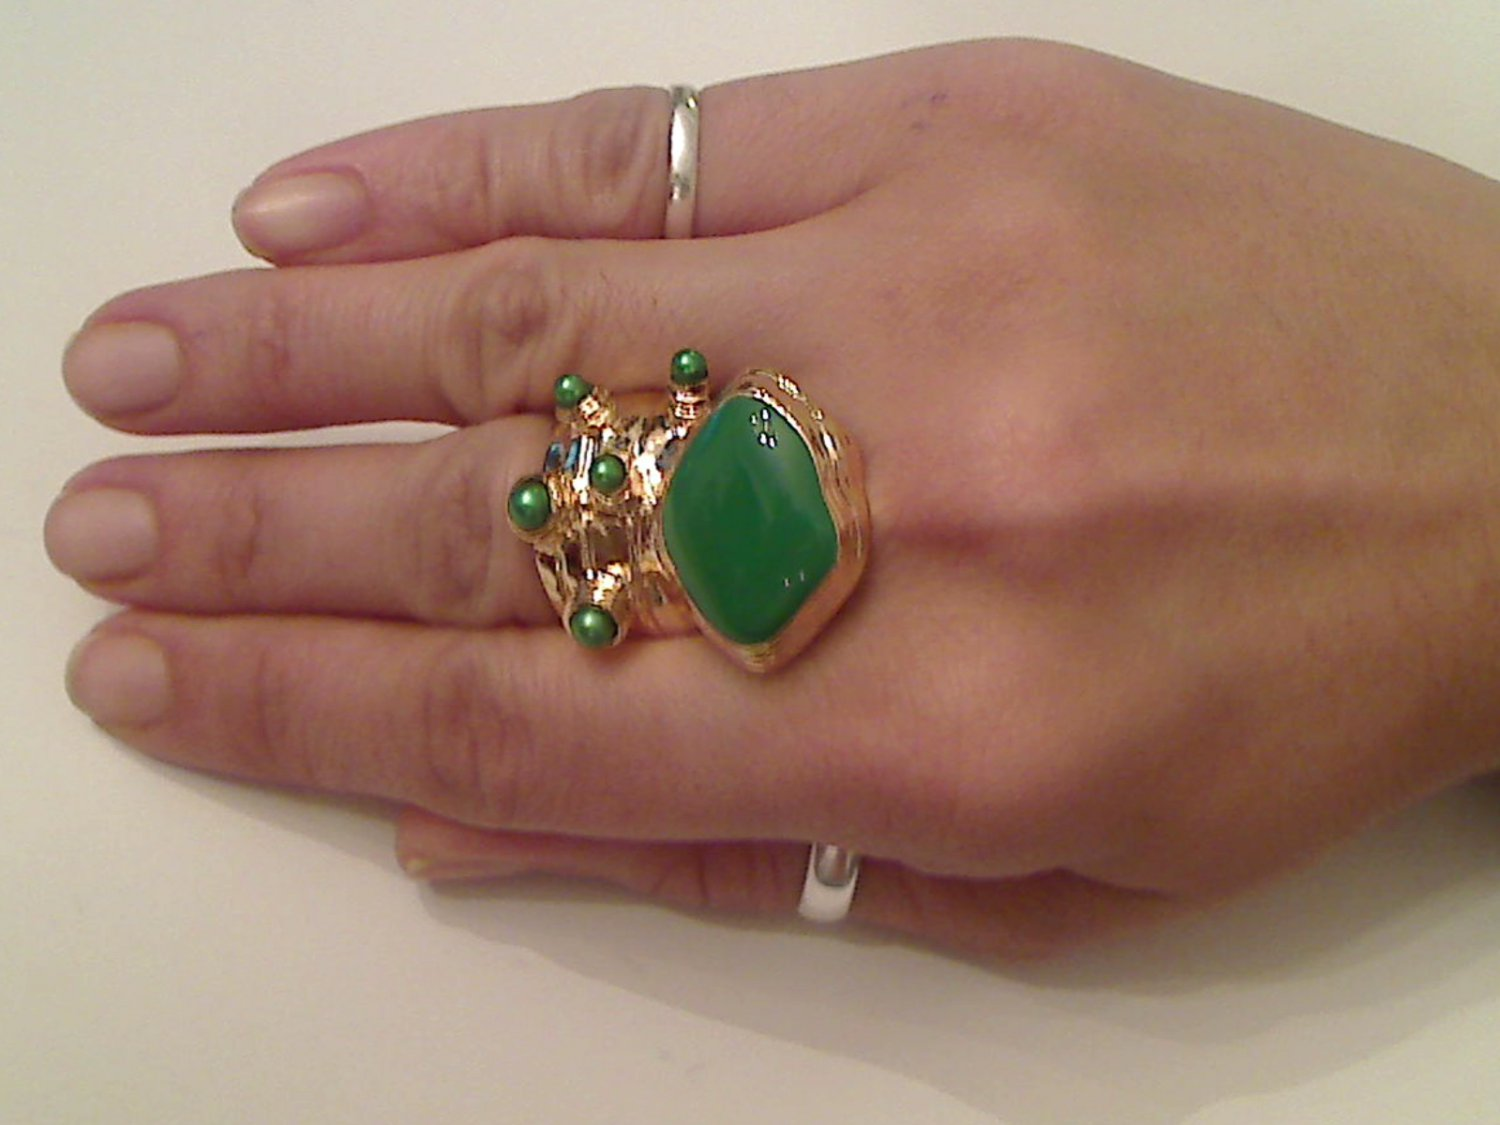 GREEN ARTY CHUNKY SPIKEY MOON KNUCKLE RING IN GOLD SIZES 7*8*9*10